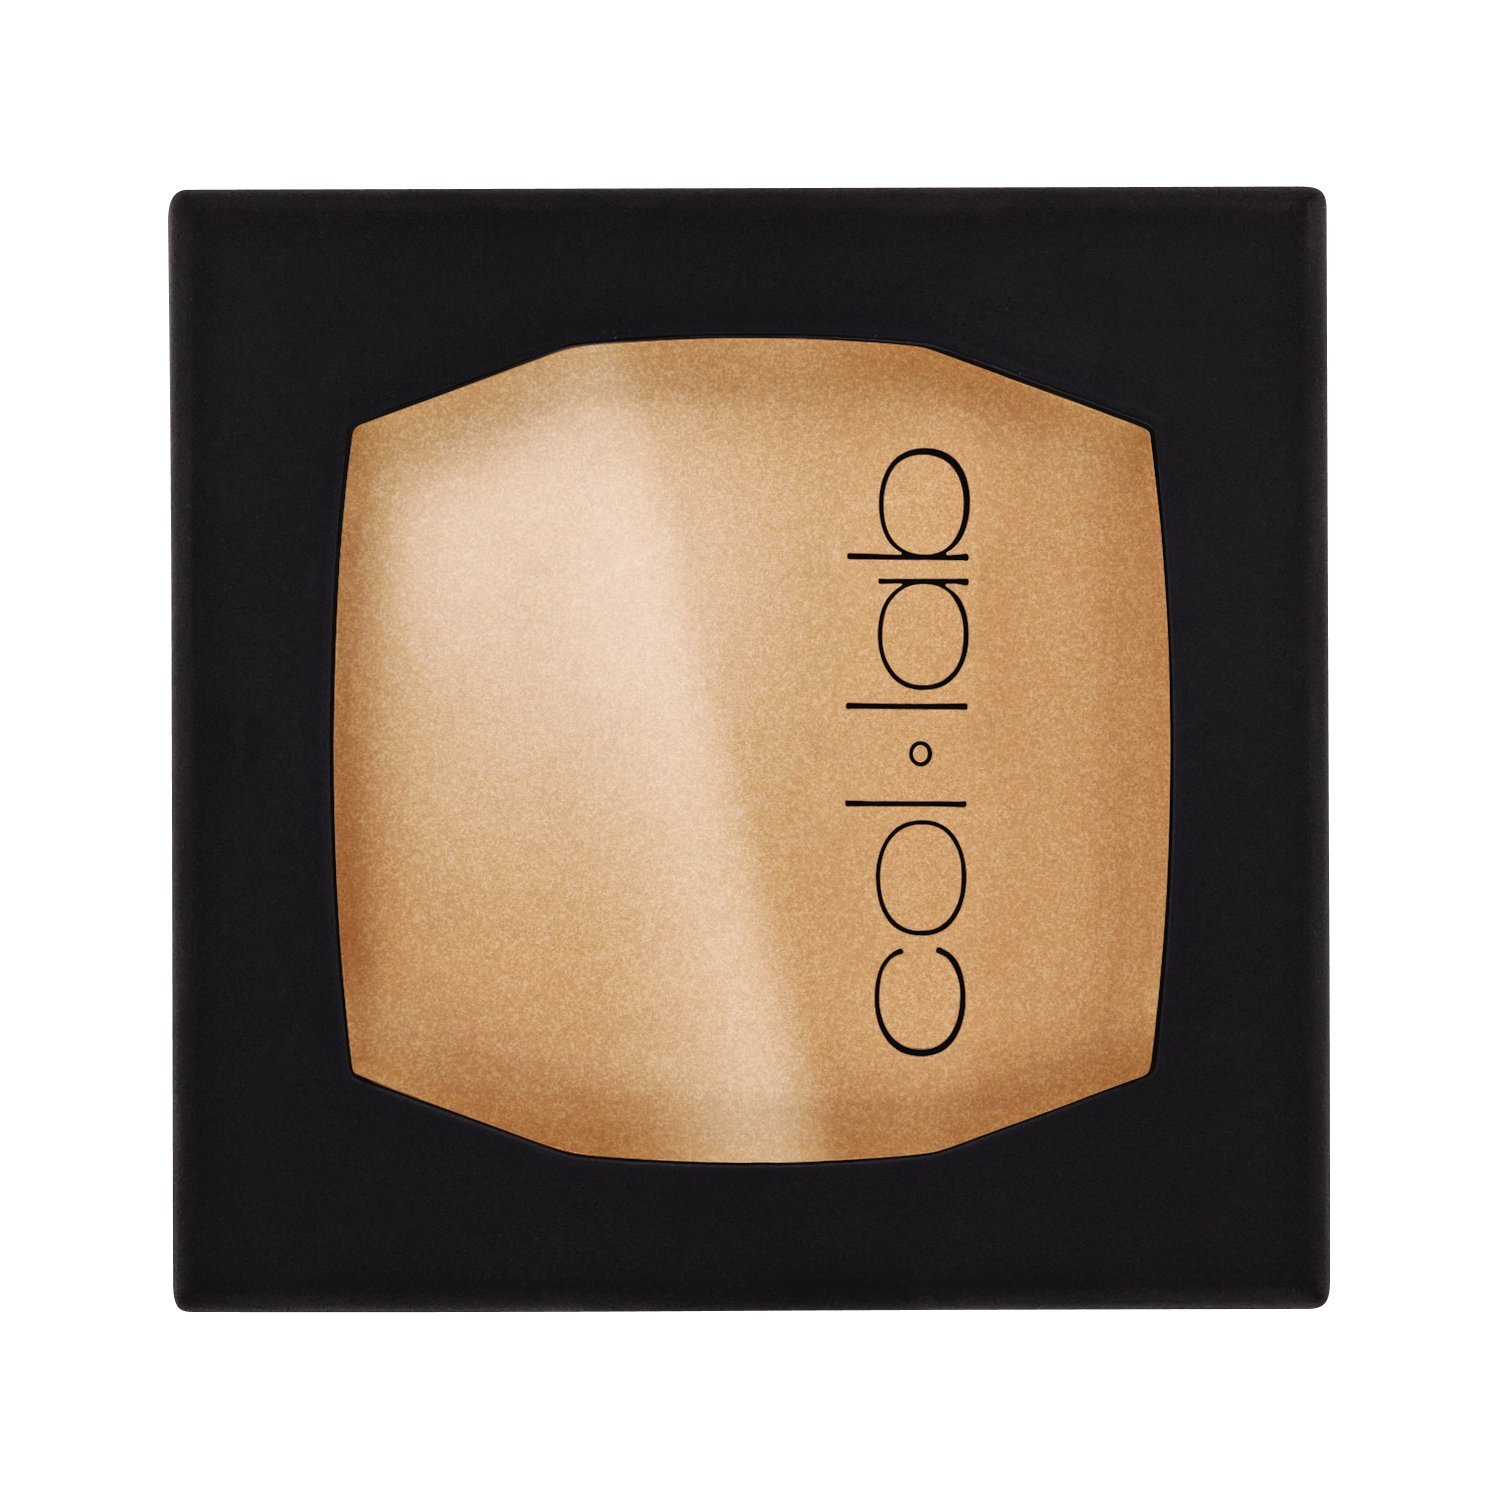 COL-LAB Soft Spot Sheer Surprise Max 79% OFF Same day shipping Blush Sweet